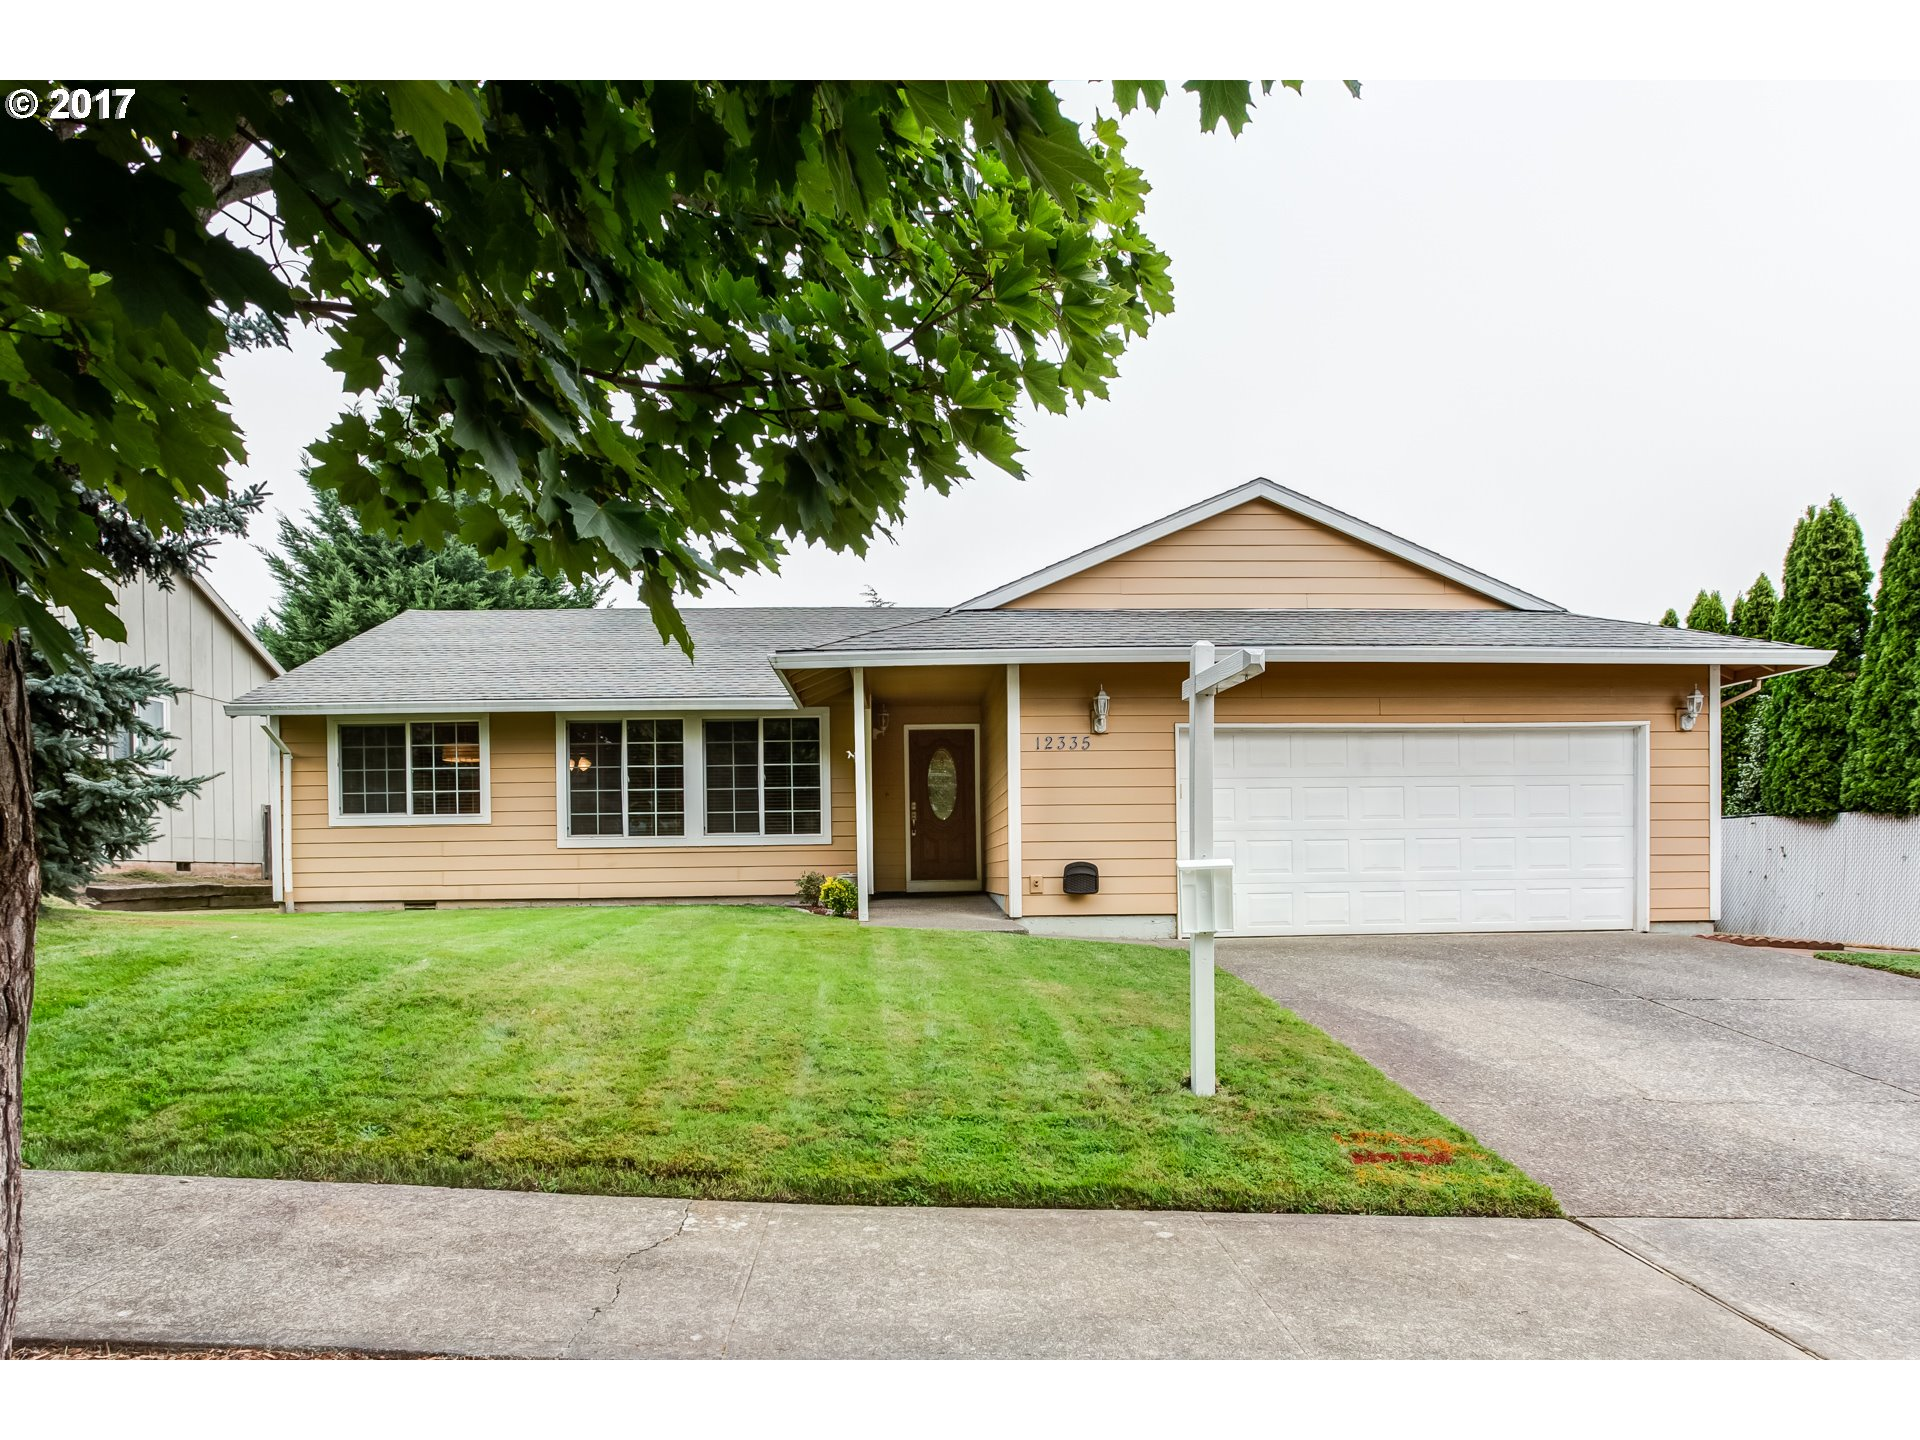 """This 70's Ranch is """"just right"""" with 1680 sq ft and a big yard! Vaulted ceilings, sunken living rm, family rm w/fireplace, kitchen w/new quartz counters & tile back-splash, pantry & eating area.  Lots of updates thru-out including interior doors, paint, light fixtures, main bath fixtures. Newer furnace, AC, electric panel & vinyl windows too! Backyard w/Patio for entertaining. Great Neighborhood near schools, shopping, & trails to park."""